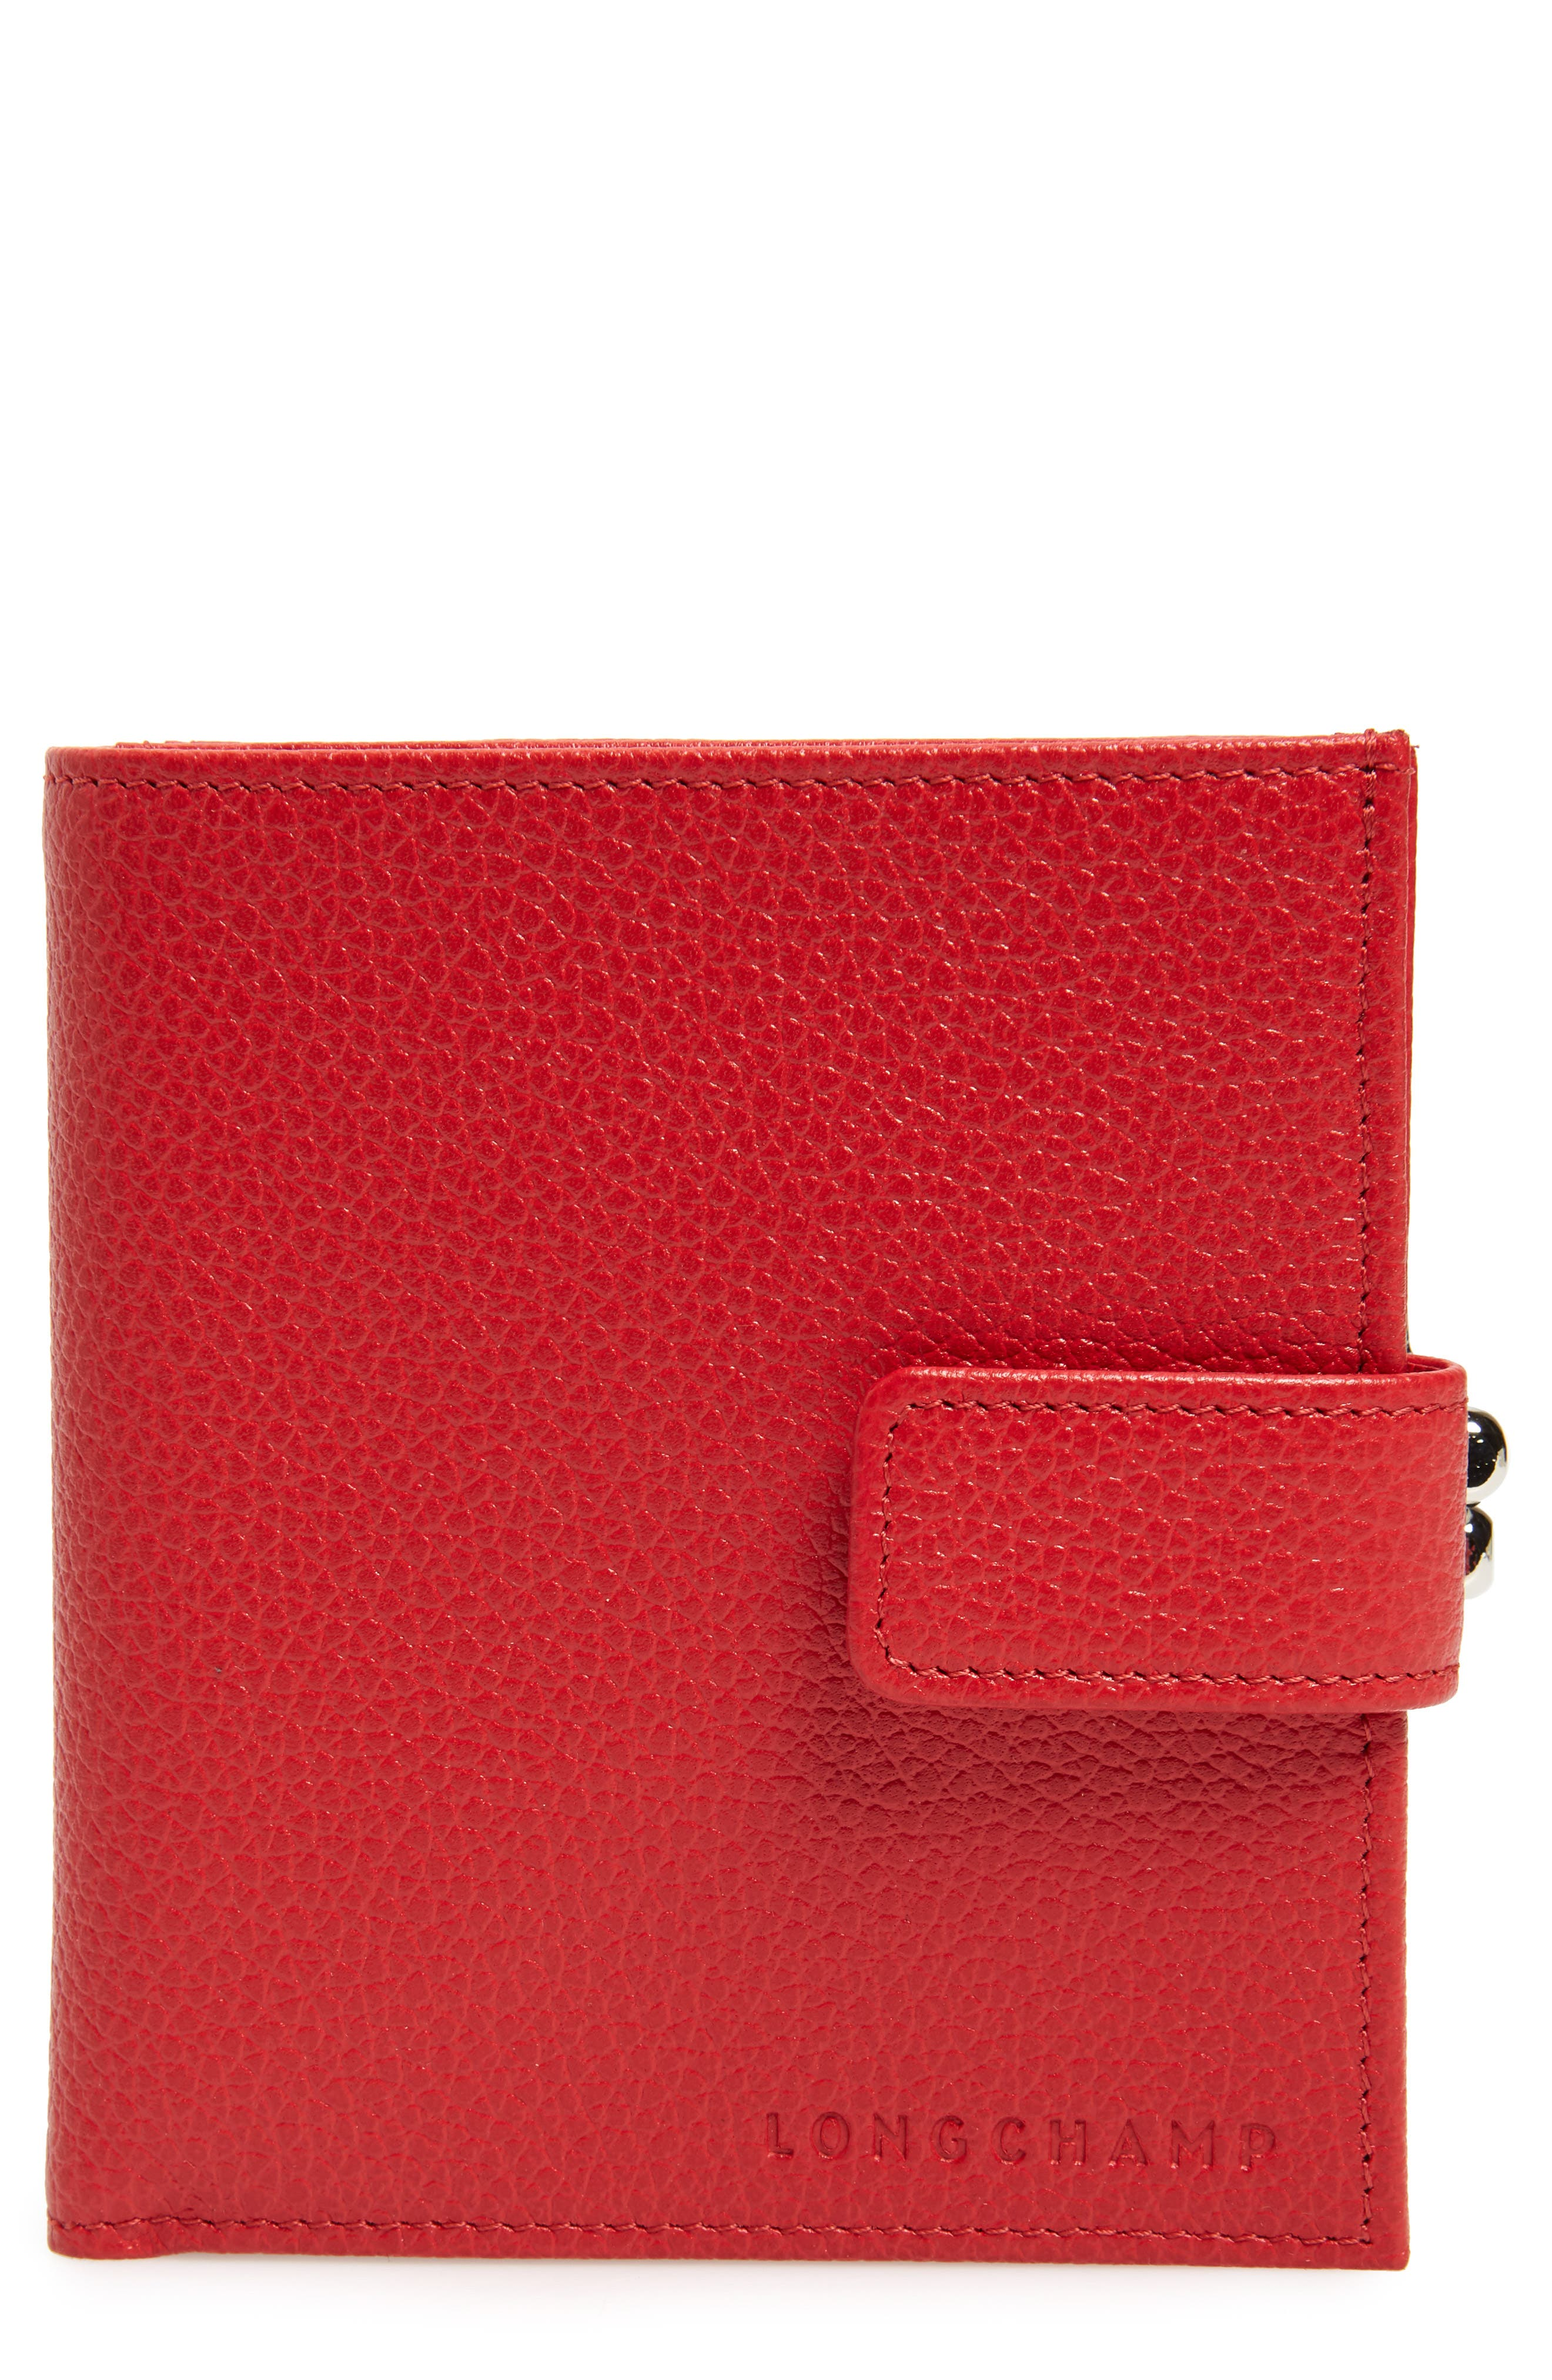 LONGCHAMP 'Le Foulonne' Pebbled Leather Wallet, Main, color, RED ORANGE